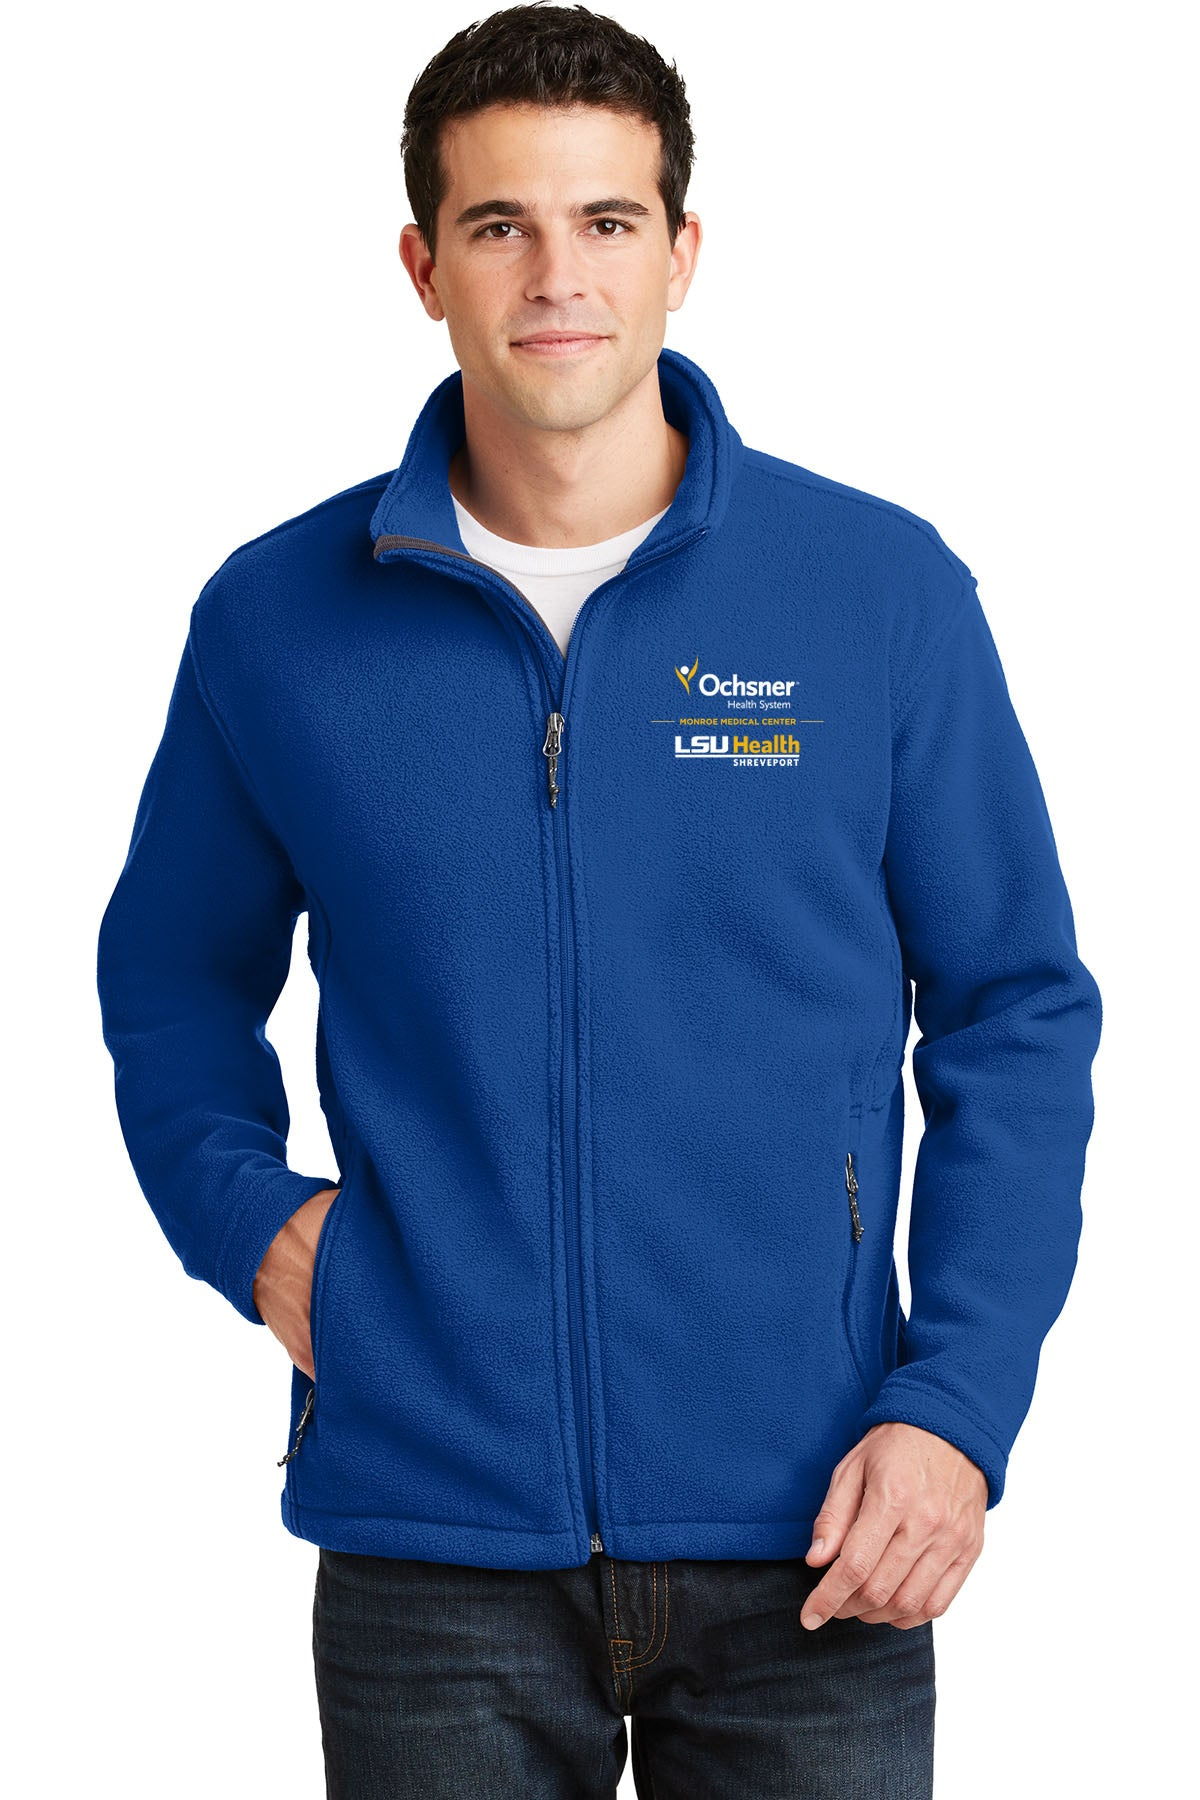 Ochsner/LSU Shreveport Value Fleece